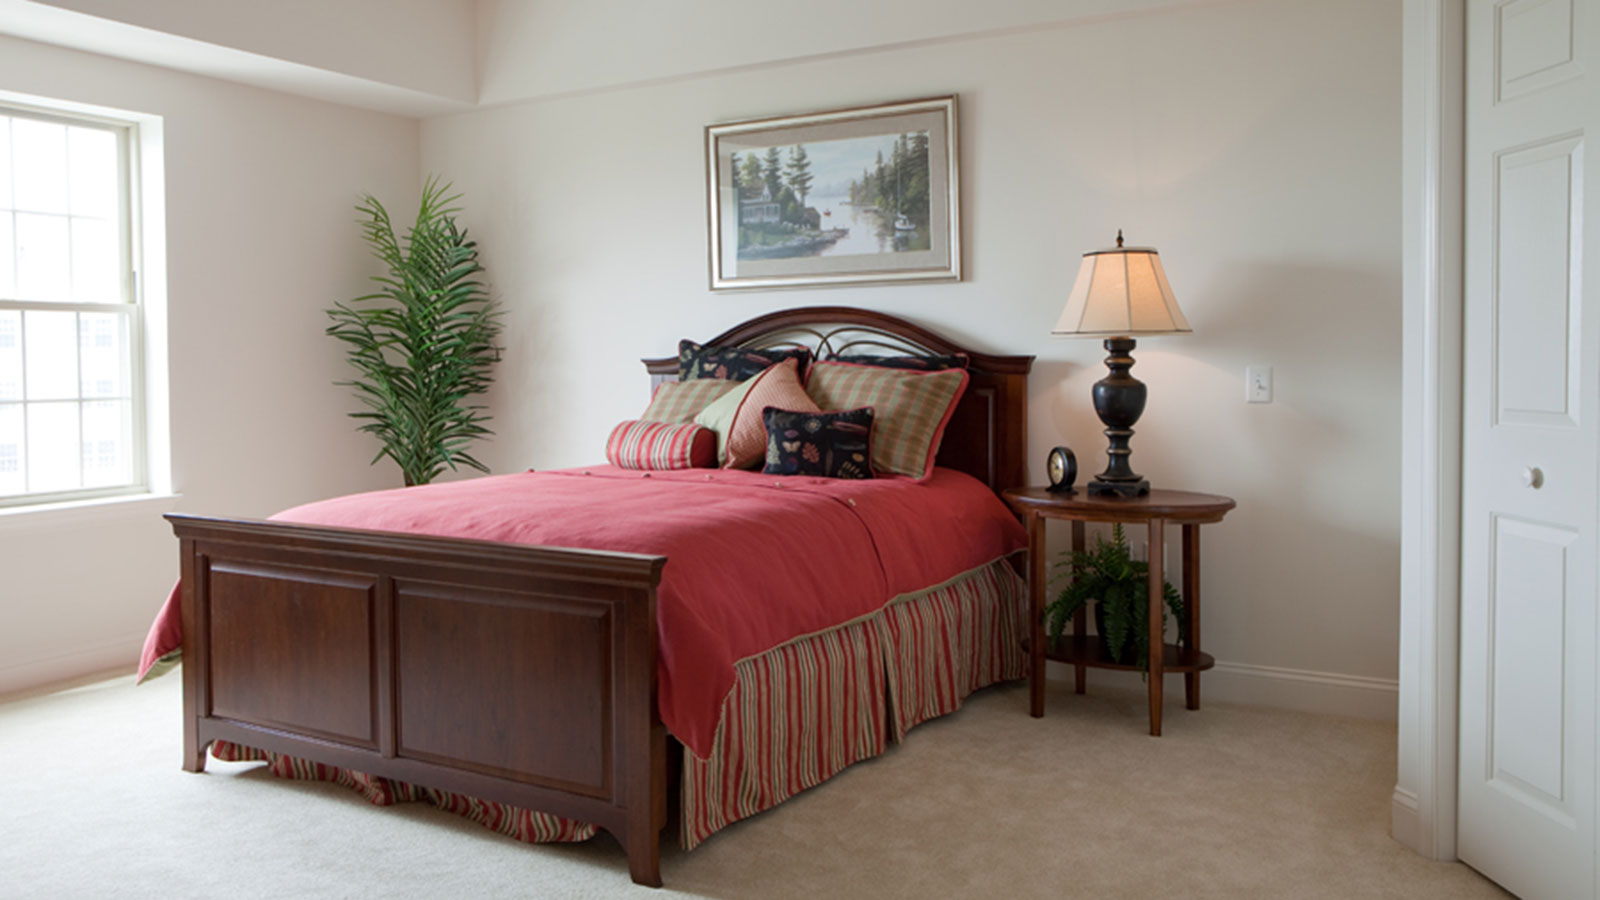 GSV-Village-Square-Apartments-Bedroom.jpg